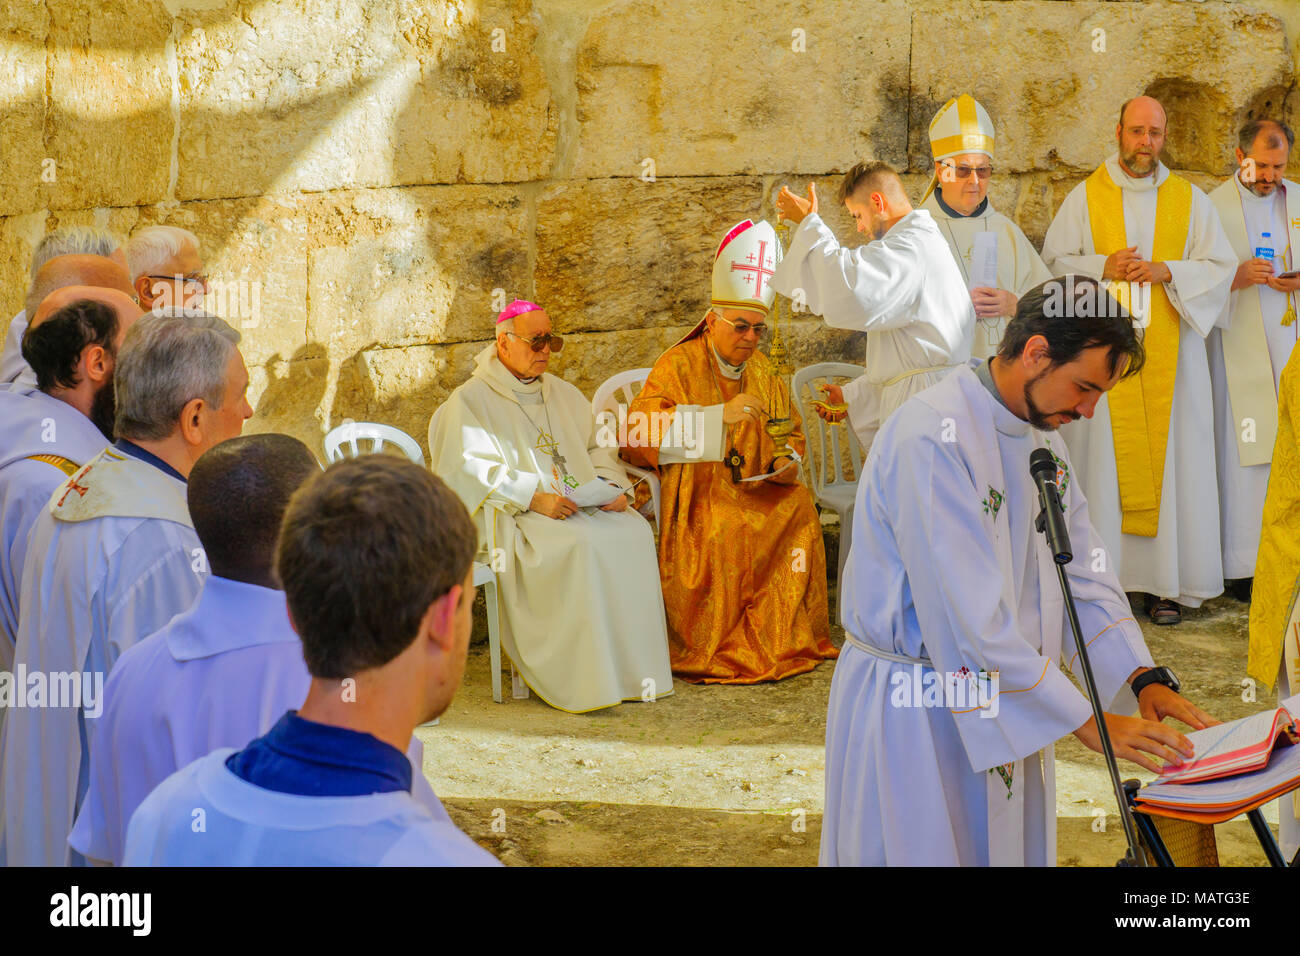 ancient roman priests stock photos ancient roman priests stock images alamy. Black Bedroom Furniture Sets. Home Design Ideas